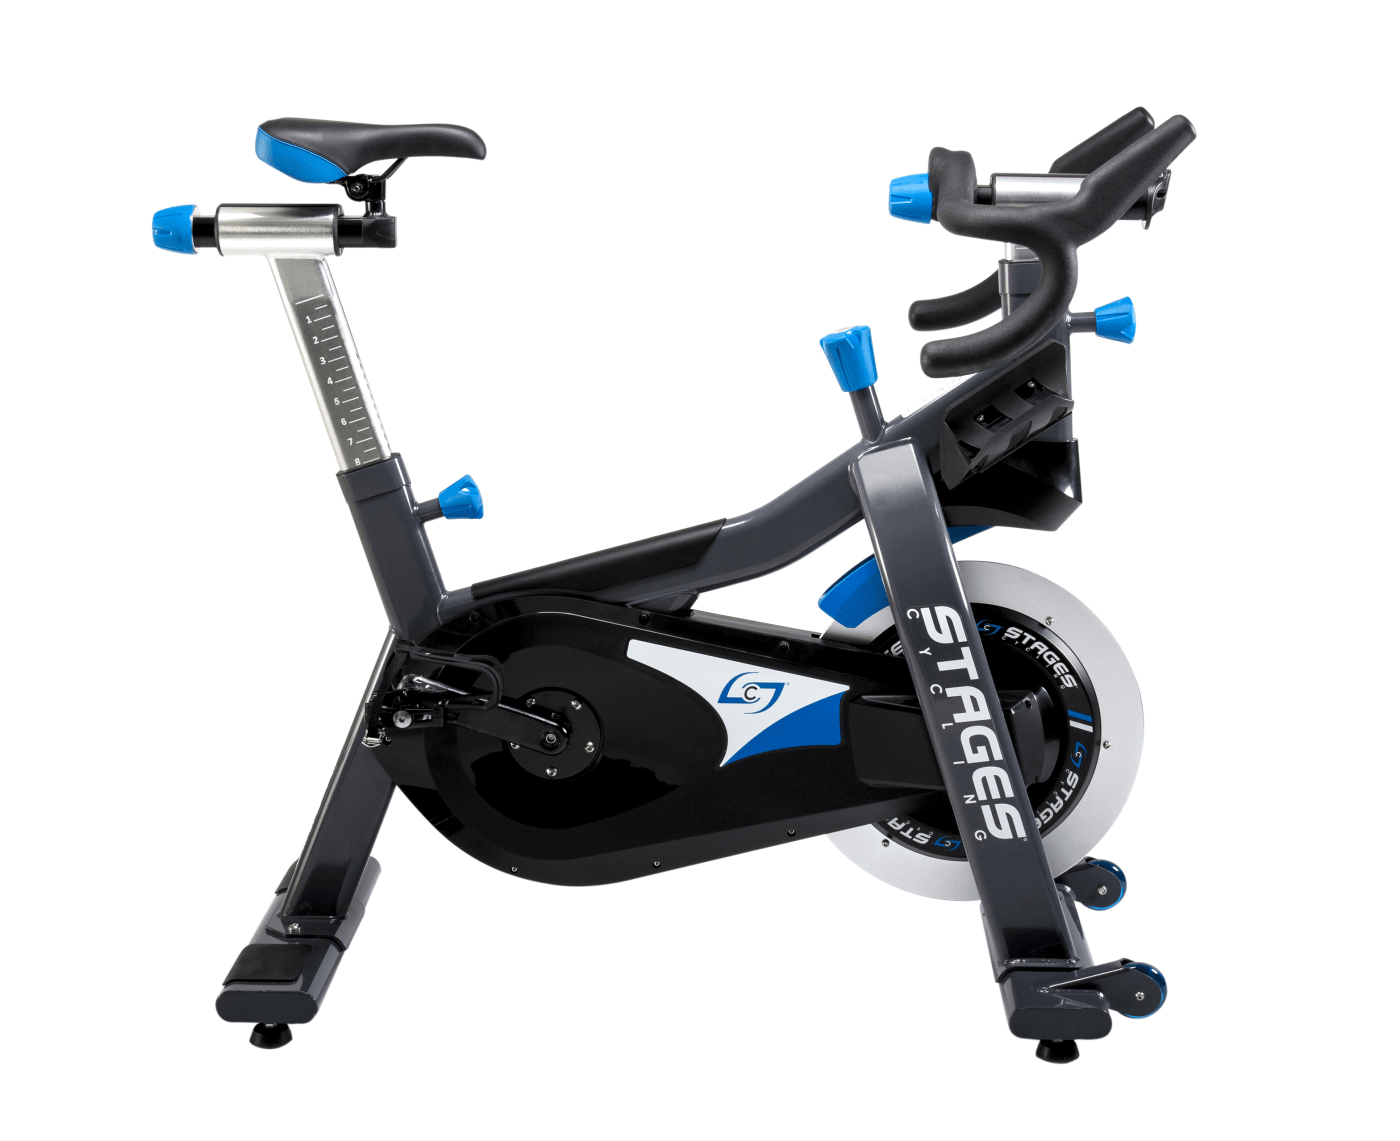 Stages Launches Exercise Smart Bike 3